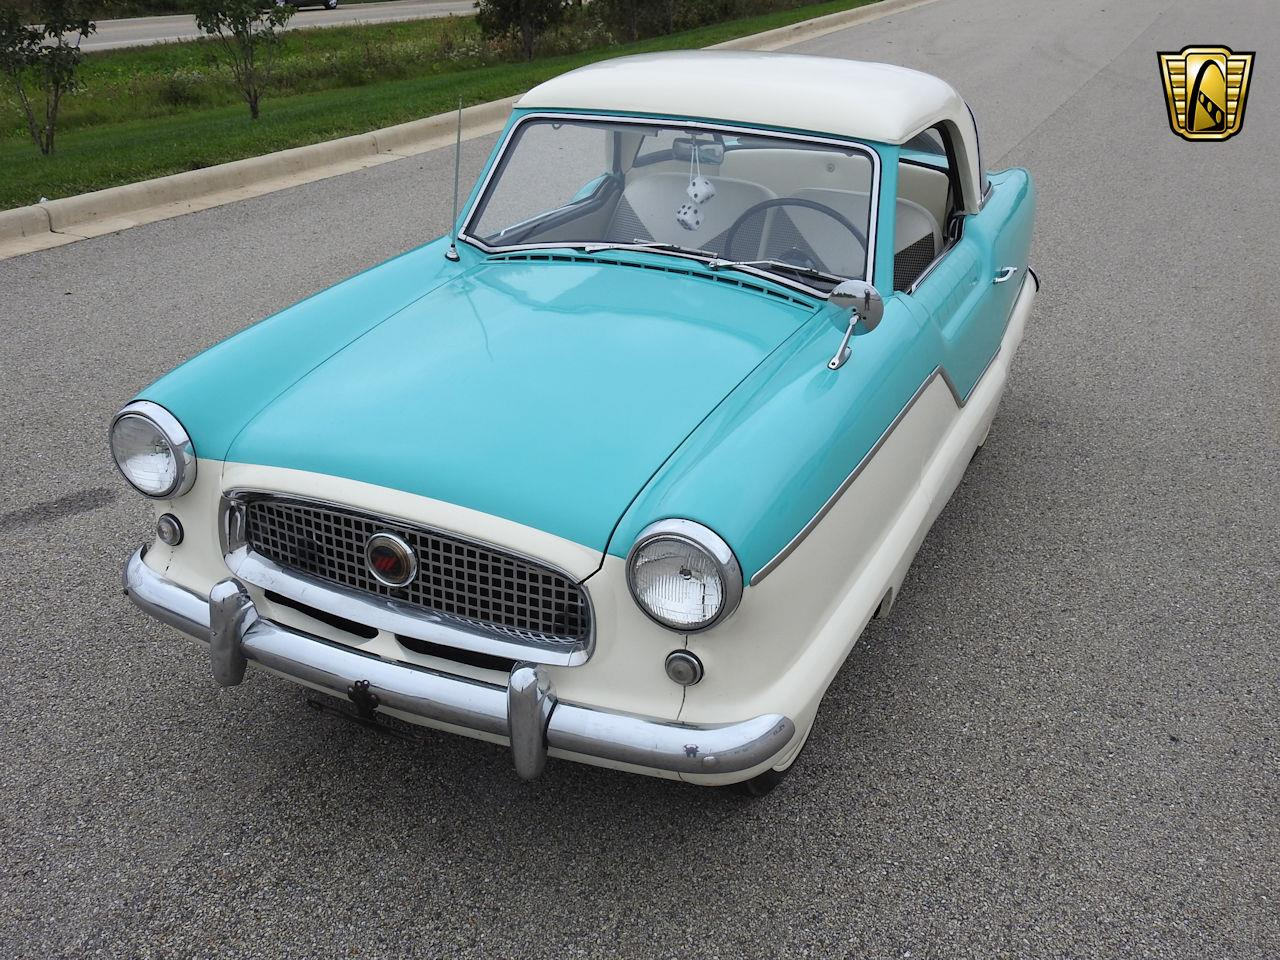 Large Picture of 1957 Metropolitan located in Wisconsin Offered by Gateway Classic Cars - Milwaukee - OOM4